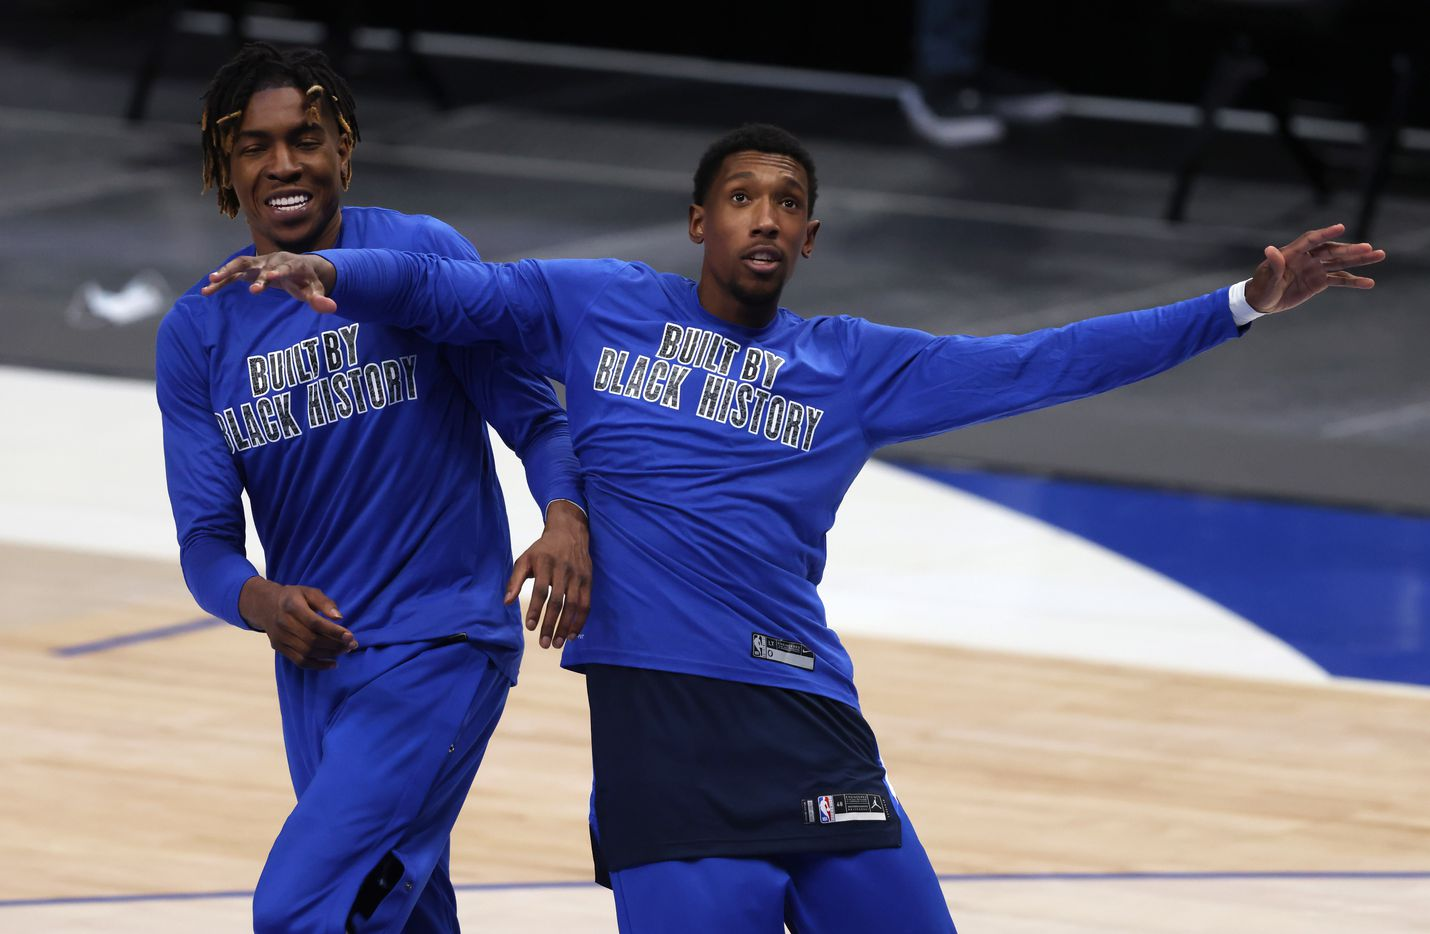 Dallas Mavericks forward Wes Iwundu (25) and Dallas Mavericks guard Josh Richardson (0) wear shirts supporting Black history month during pregame warmups before a game against the Phoenix Suns at American Airlines Center on Monday, February 1, 2021in Dallas. (Vernon Bryant/The Dallas Morning News)